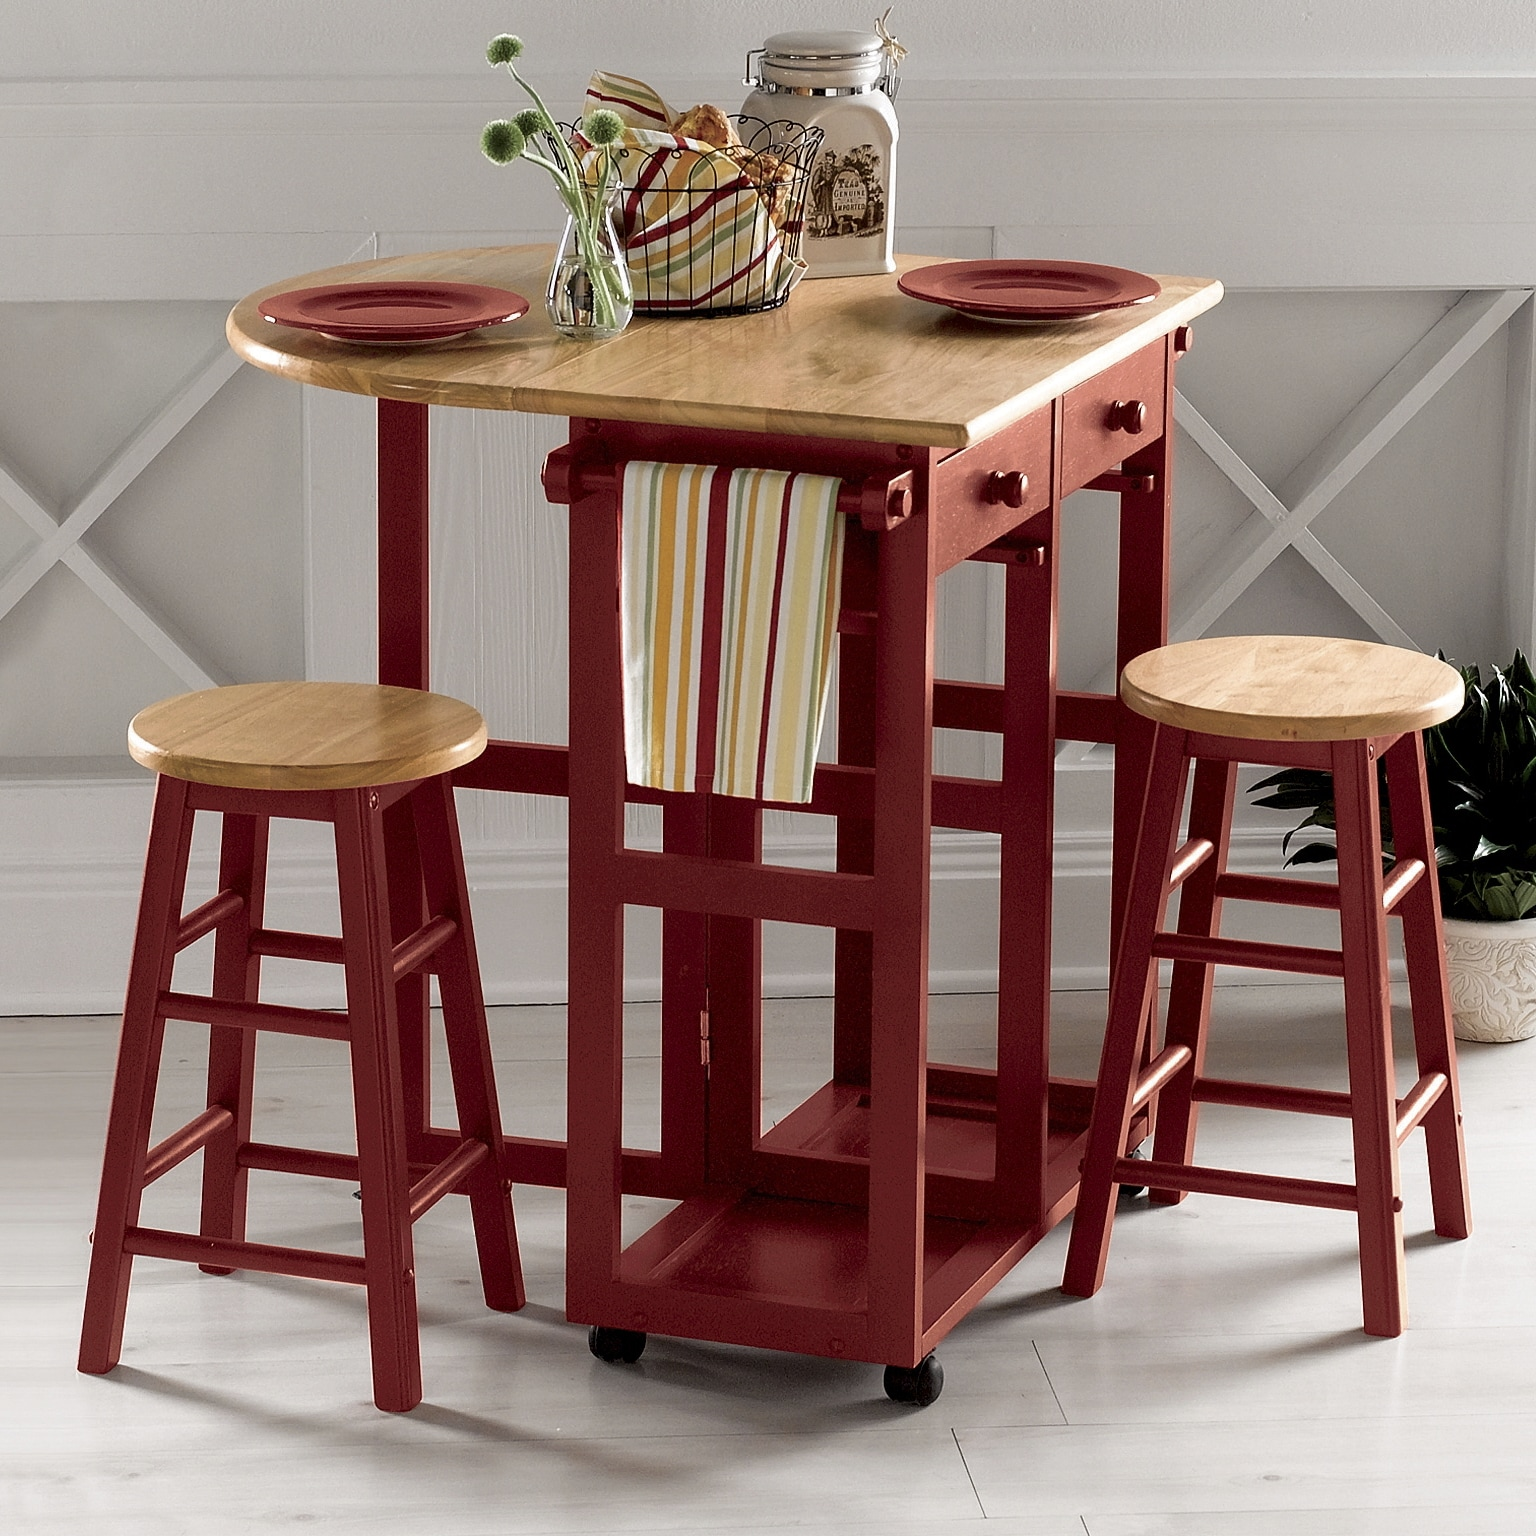 Stools Kitchen Islands Kitchen Island With Stools Seventh Avenue